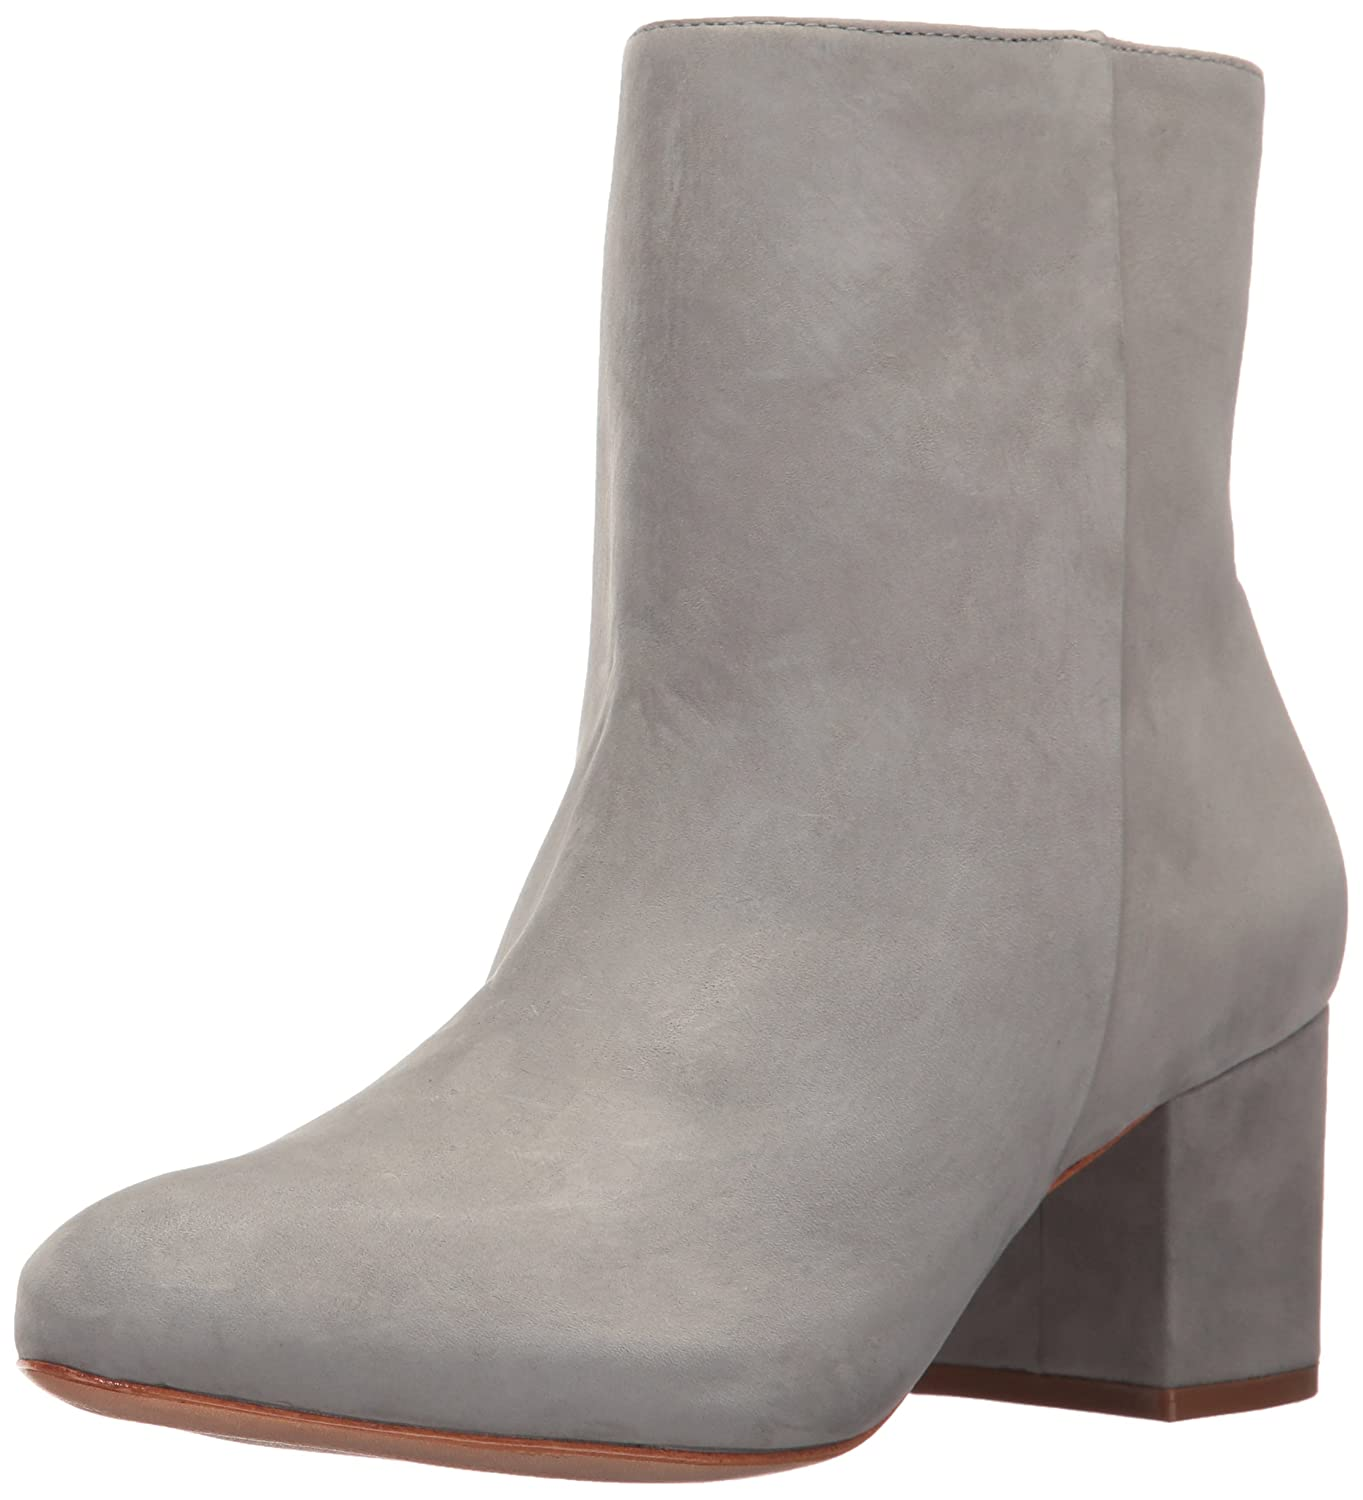 SCHUTZ Womens Lupe Ankle Boot Midnight Blue 8 M US